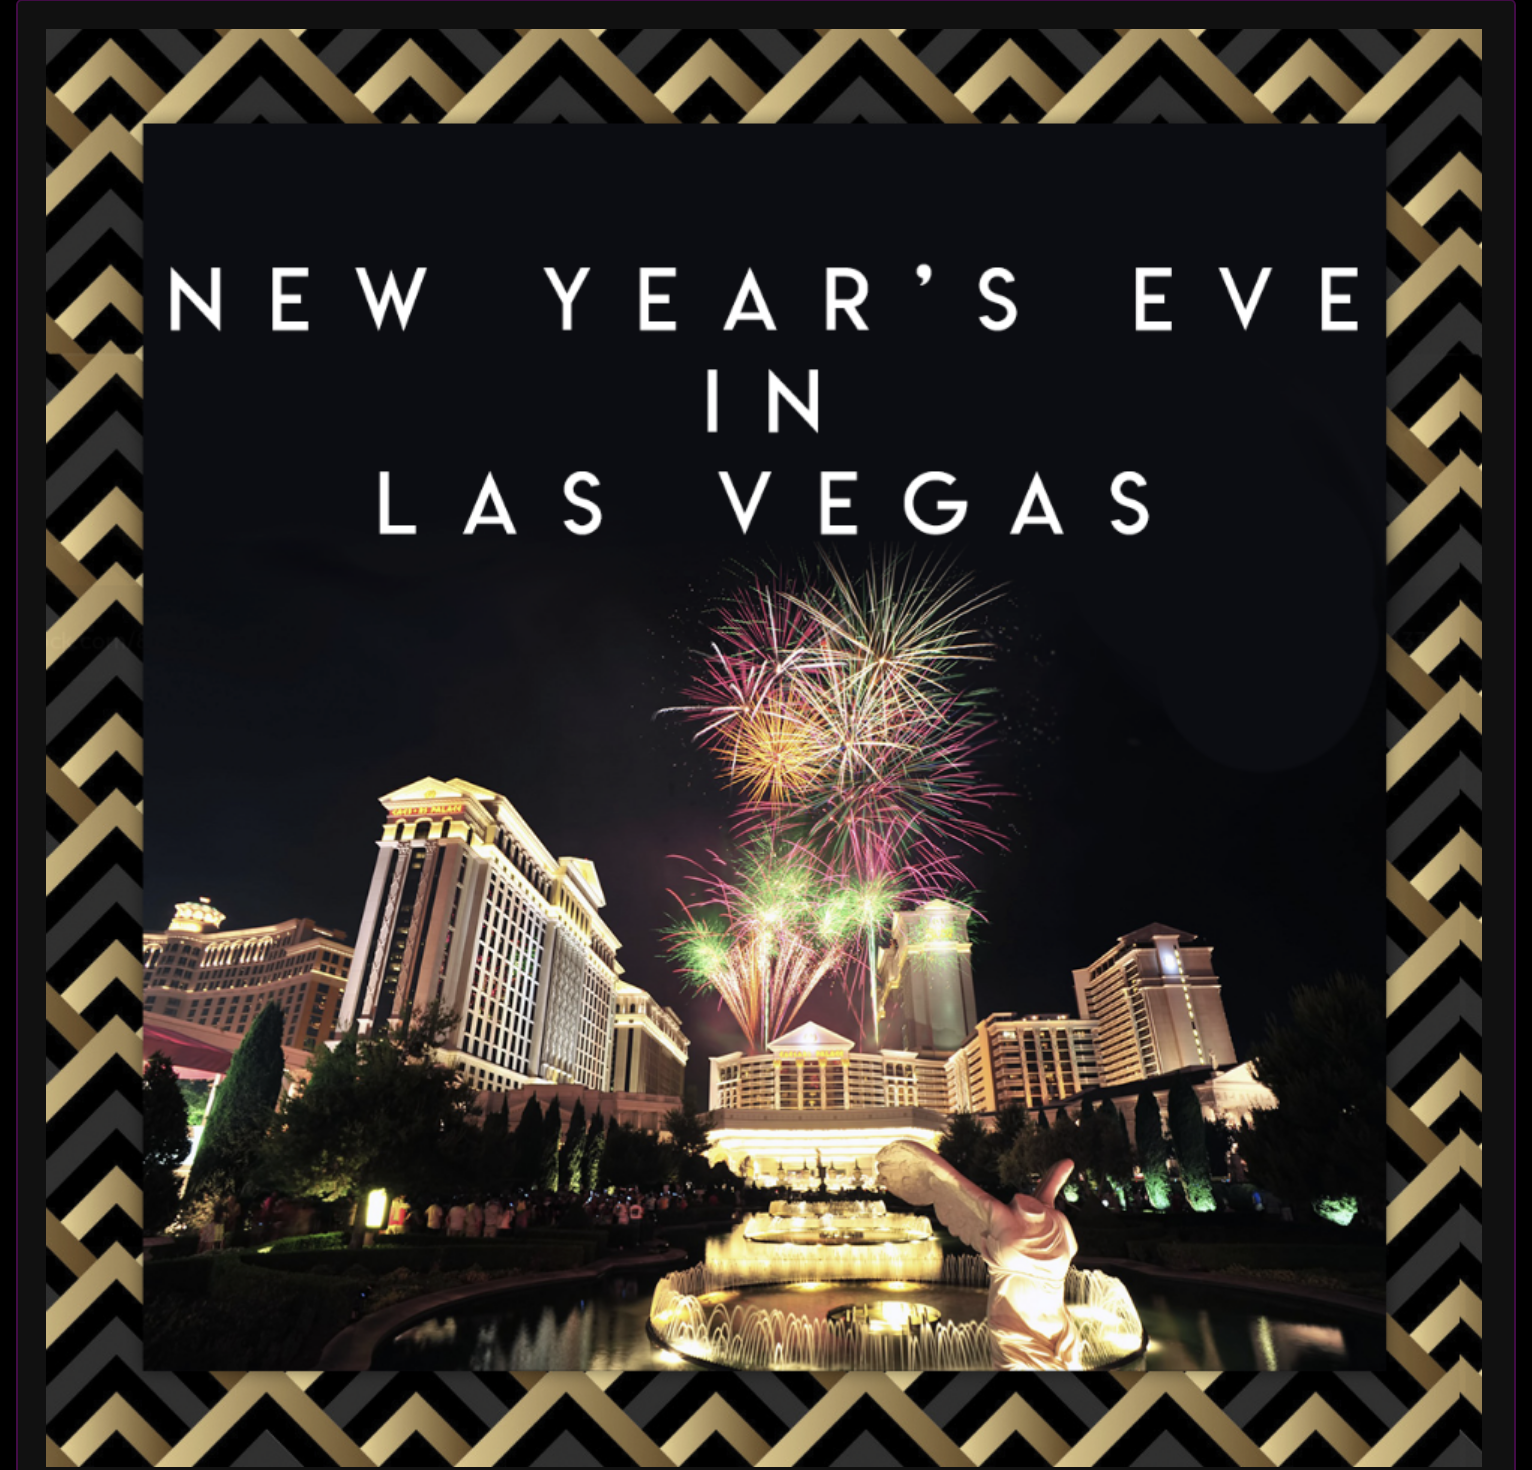 Things To Do In Las Vegas For New Year S Eve 2019 With Images New Years Eve Vegas New Years New Years Eve In Las Vegas